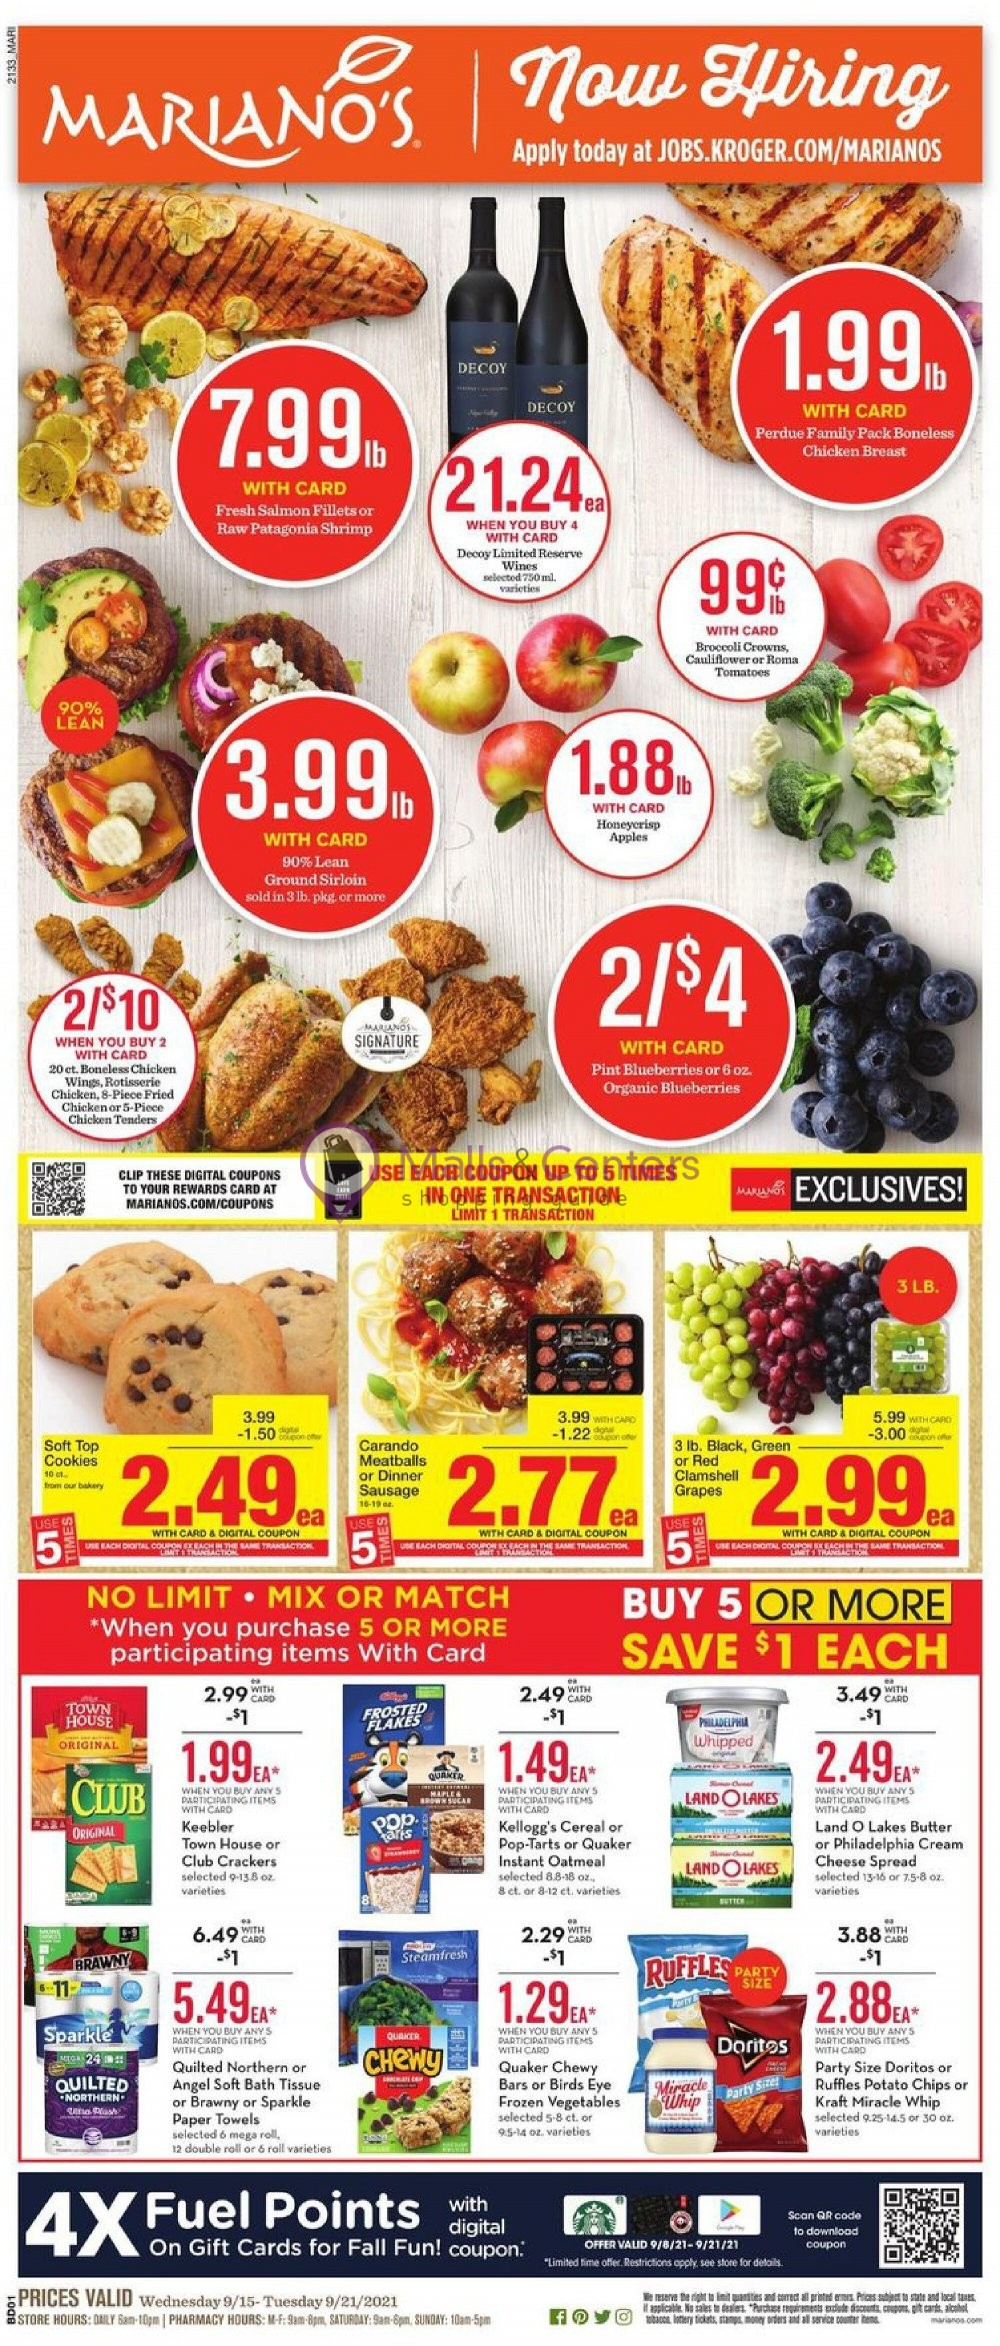 weekly ads Mariano's - page 1 - mallscenters.com